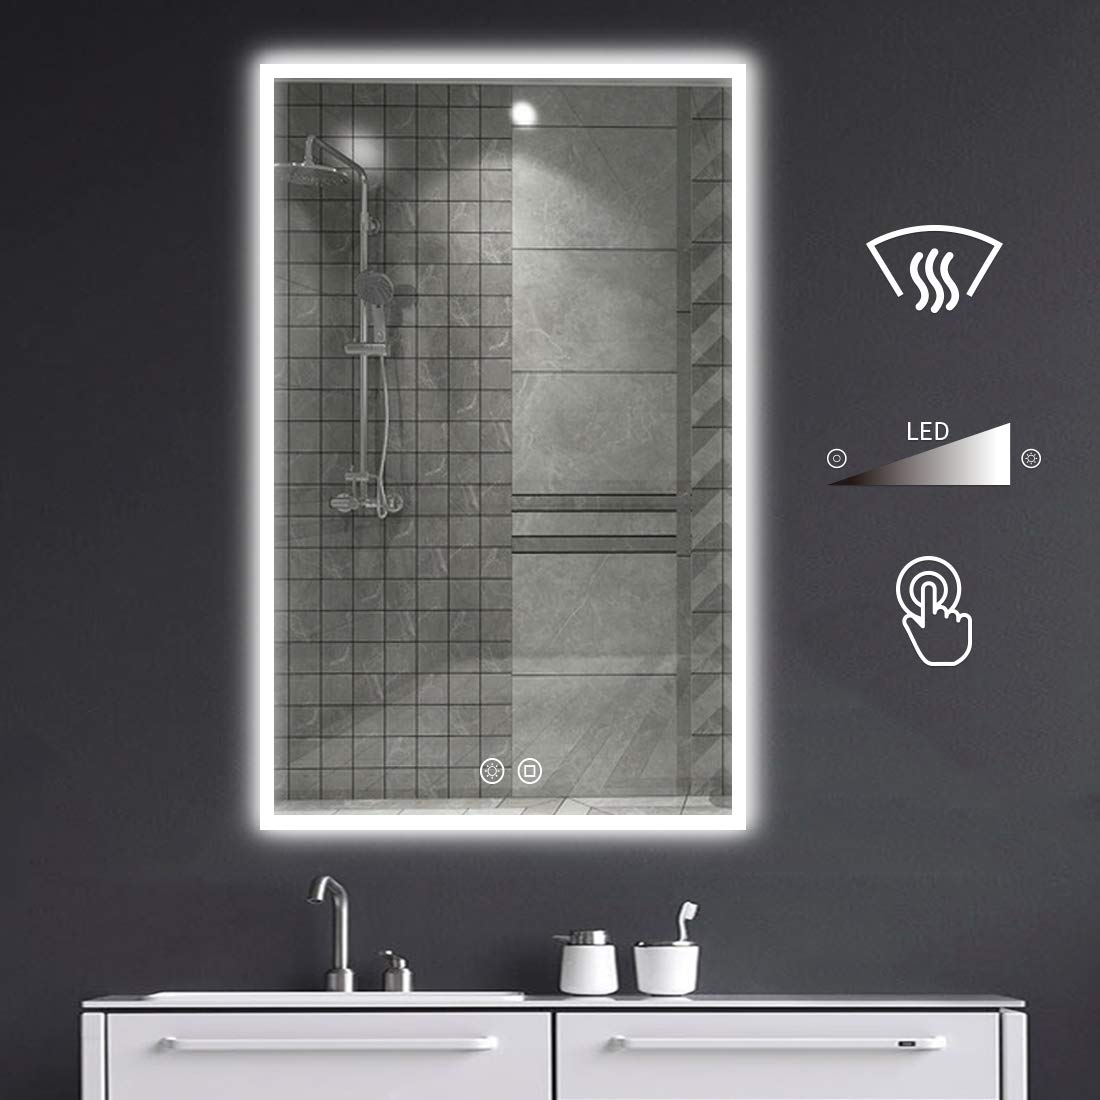 BYECOLD LED Bathroom Mirror with Double Touch Switch Anti-Fog Wall Mirror, Adjustable Color Lights,Dimmable Brightness, LED Lighted Vanity Make up Mirror Vertical & Horizontal - 39.4''x23.6''